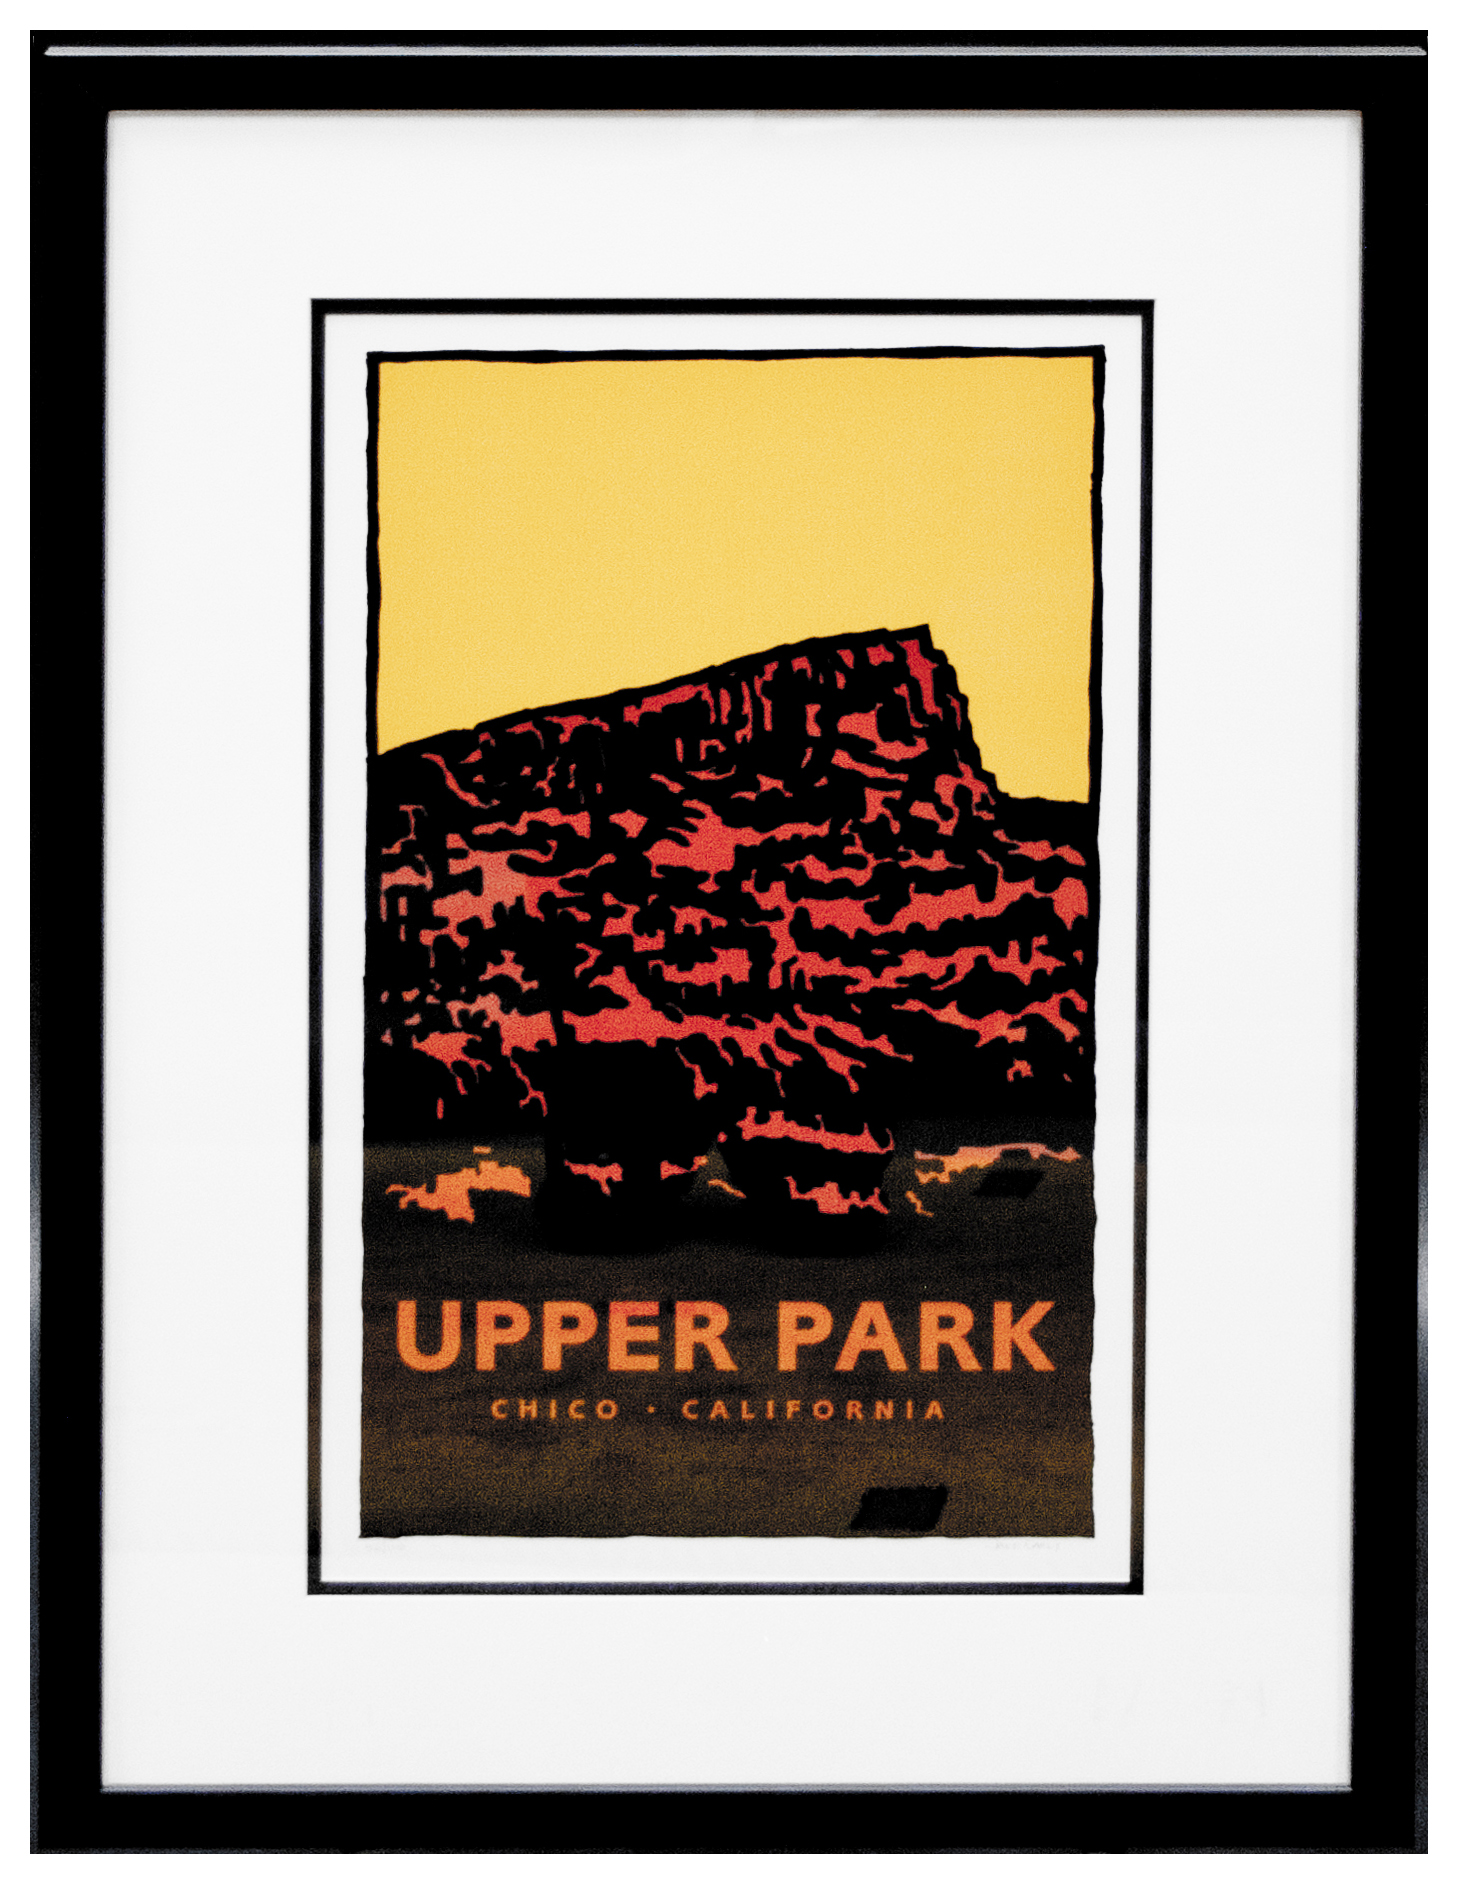 Upper Park Framed Secondary Market Print